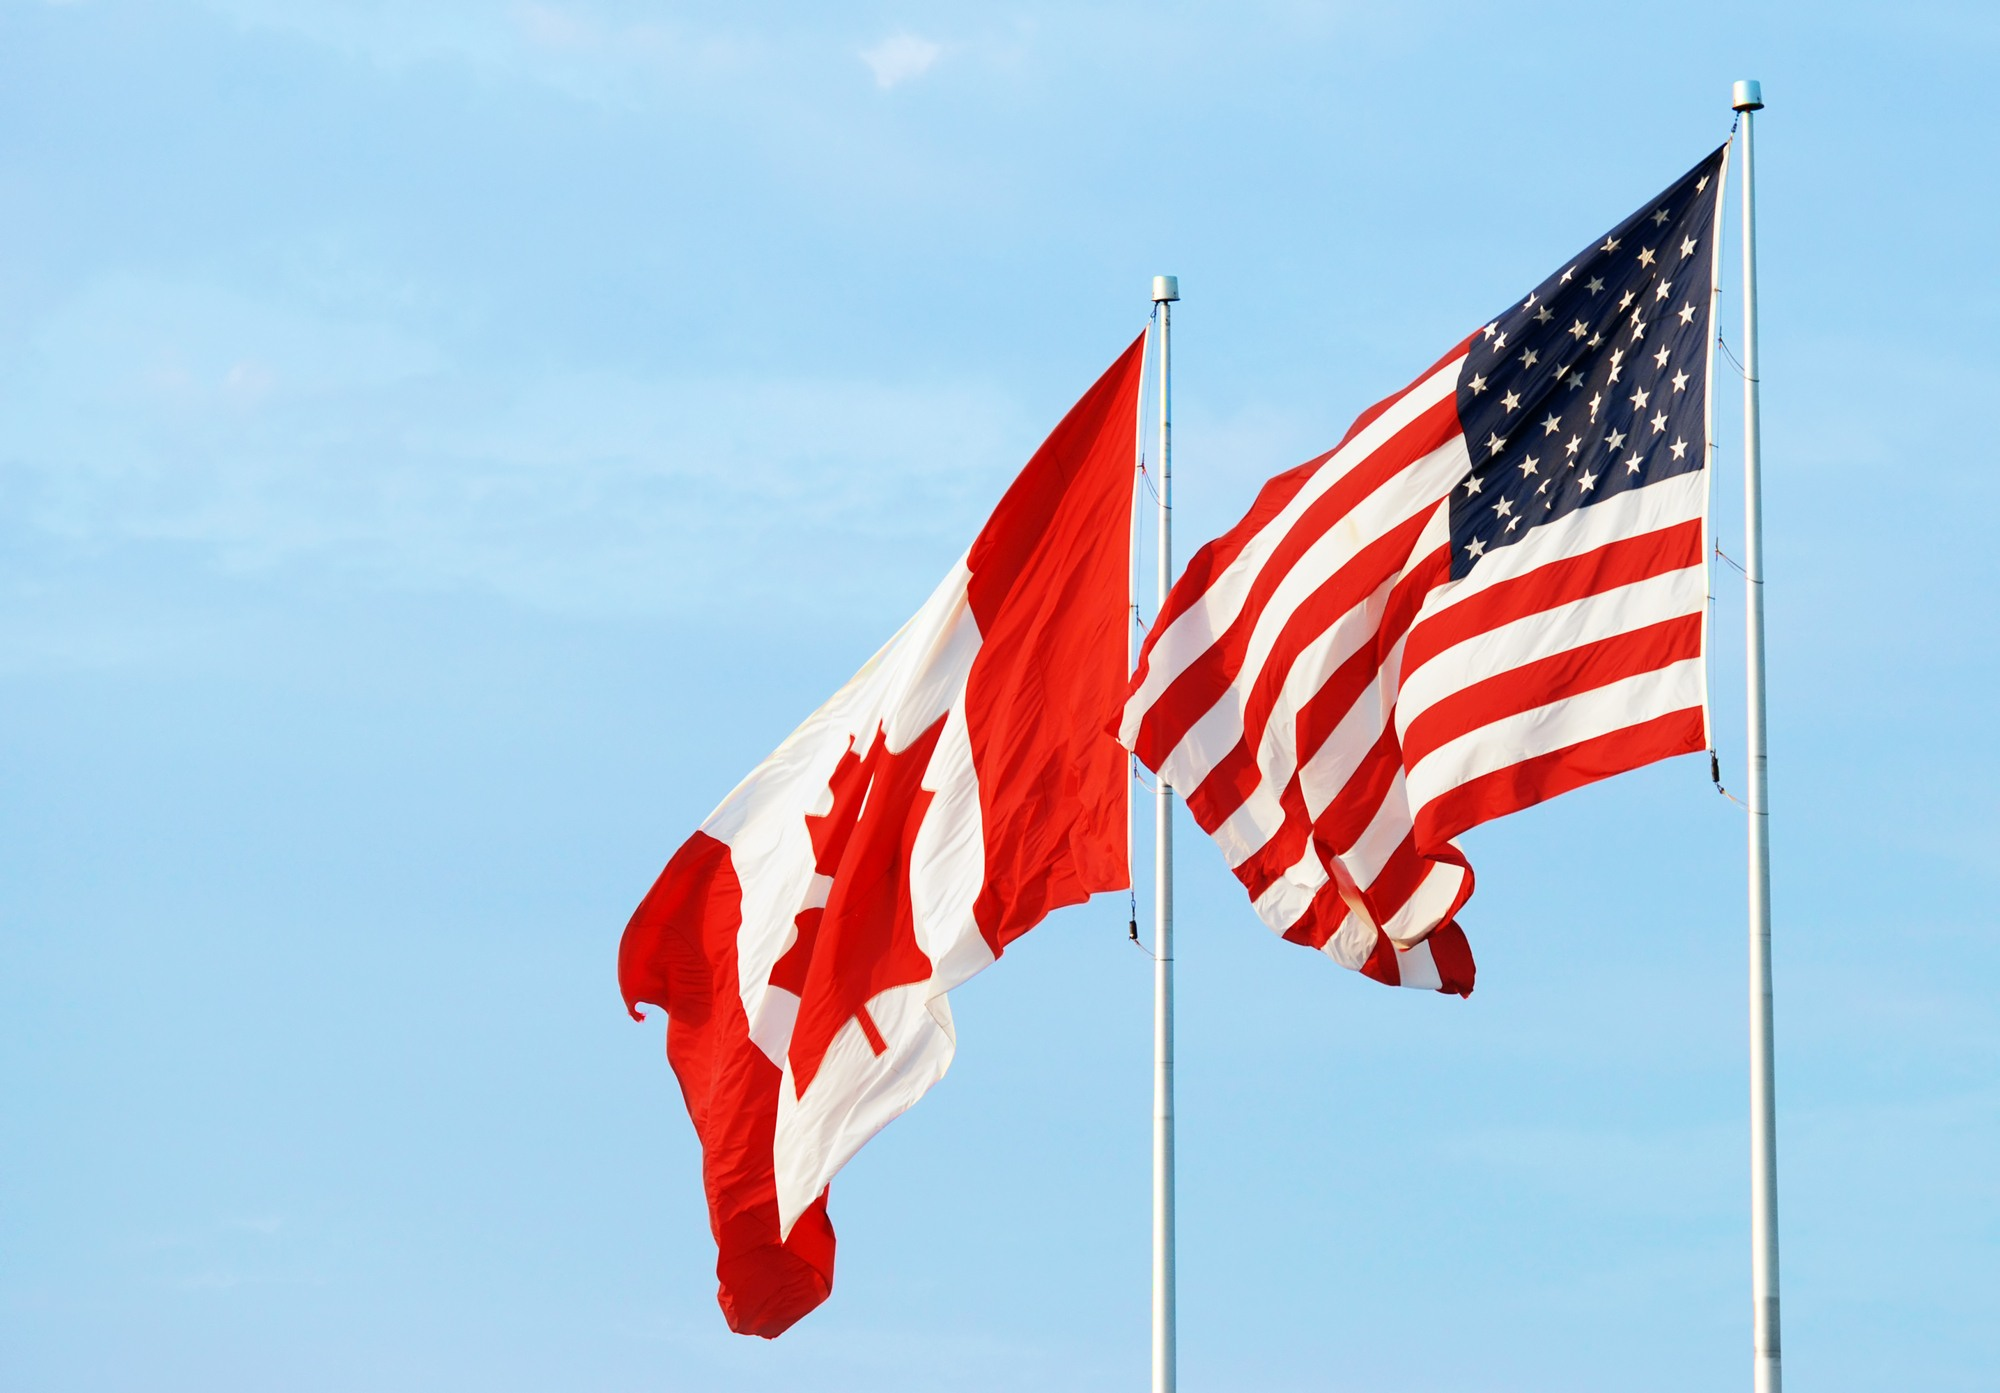 Canadian and American flags together